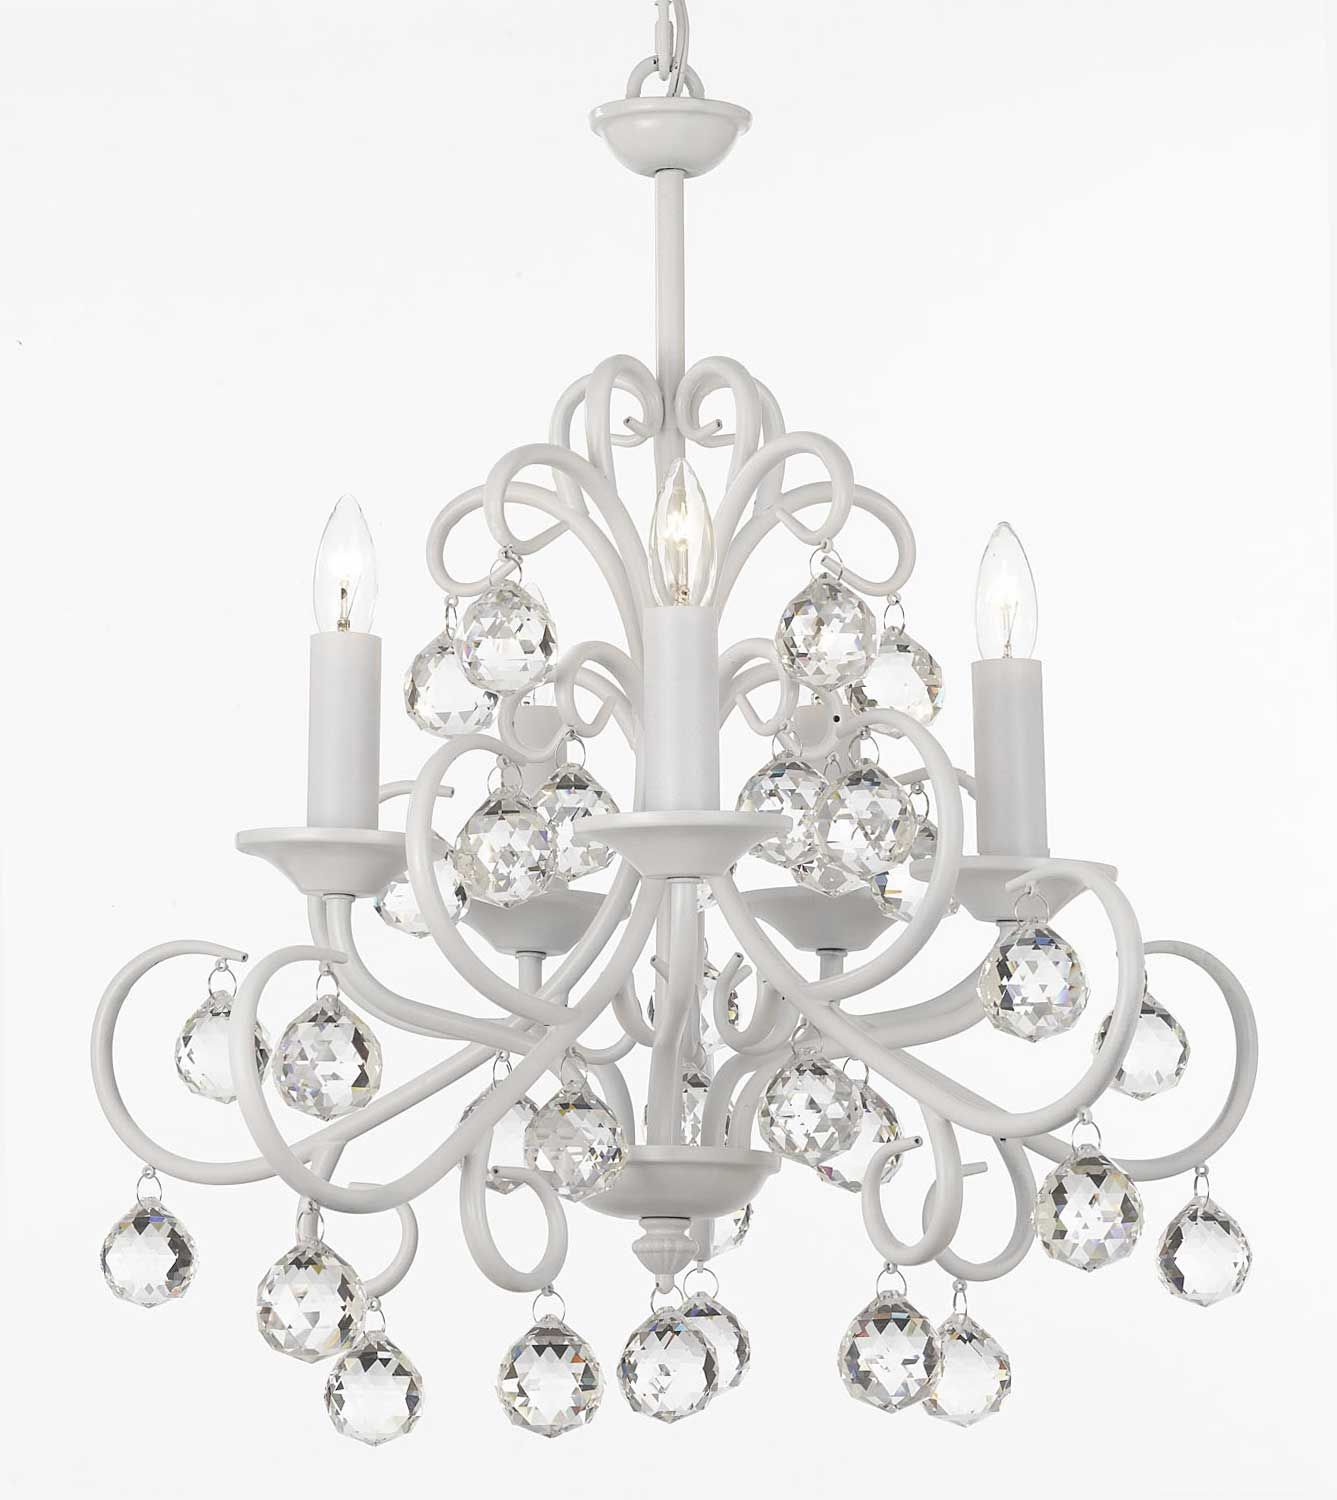 A7-WHITE/586/5 Gallery Wrought [With Crystal] Gallery Wrought [With Crystal] WROUGHT IRON WHITE CHANDELIER